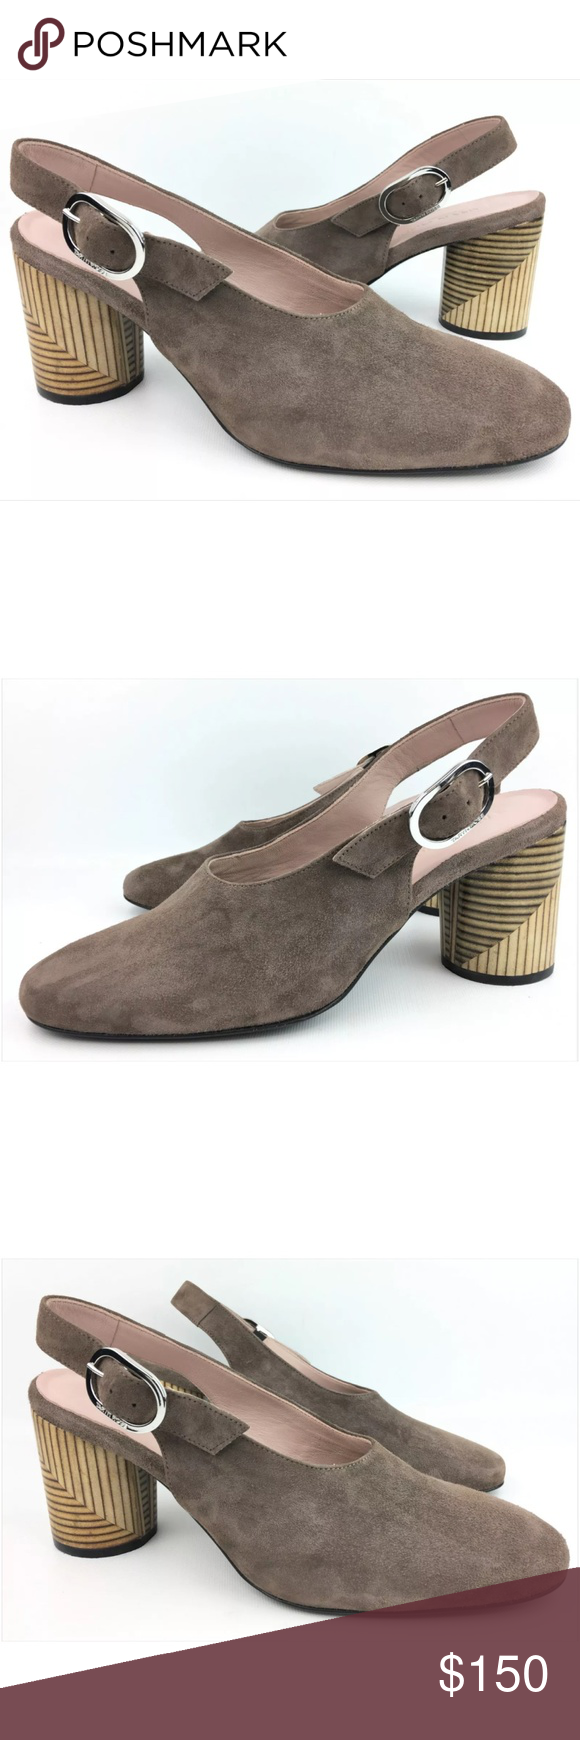 318f8c3b6c9 Taryn Rose Fabiola Taupe Suede Slingback Pumps Used in great condition.  Shoes have minor dirty marks or spots. Actual pictures. Original box not  included.